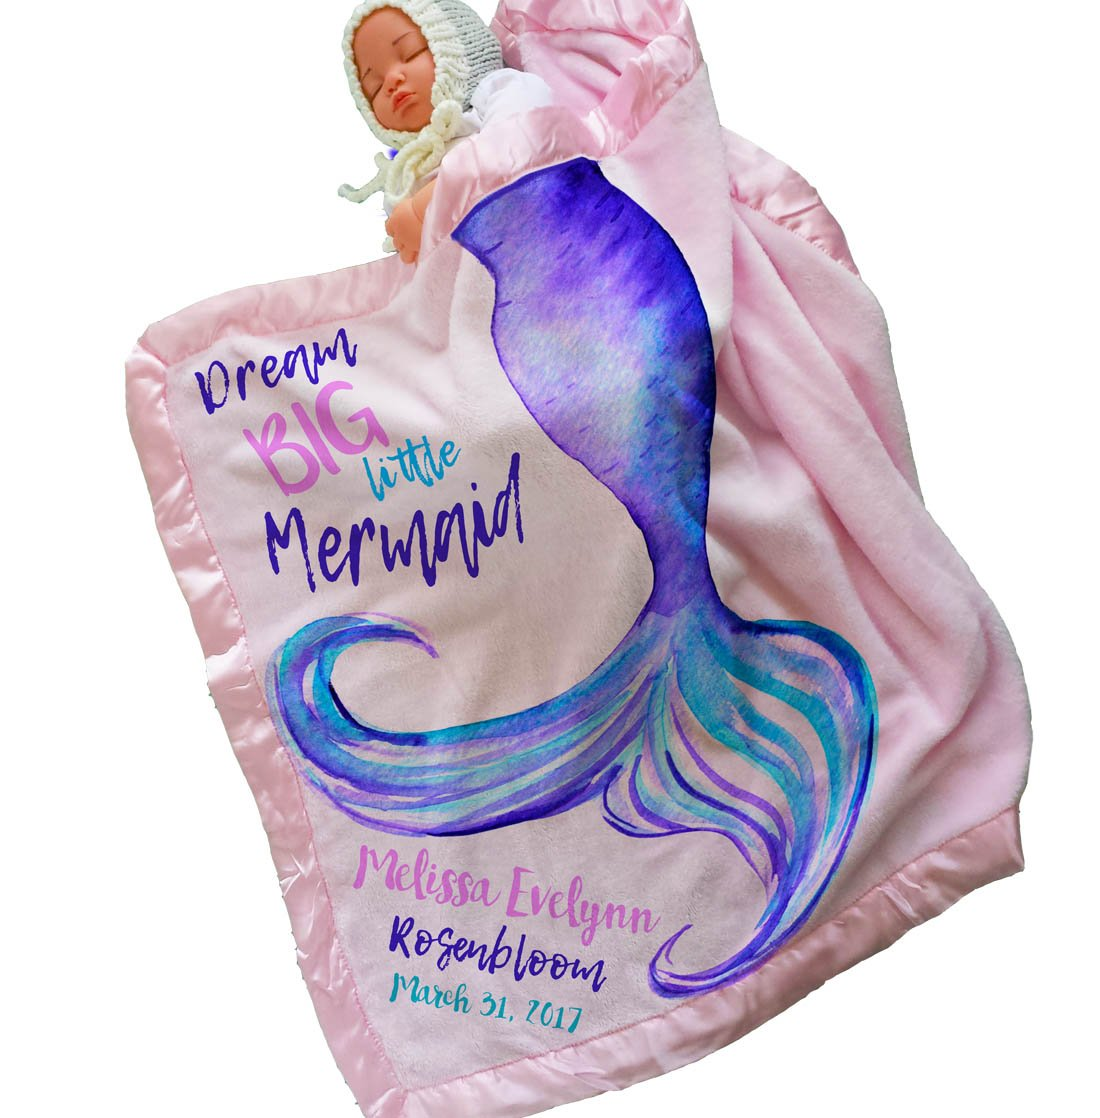 Personalized Mermaid Tail Baby Blanket (30x40, Pink) Satin Trim Baby Bedding - Special Gifts for New Baby Room Nursery Newborn